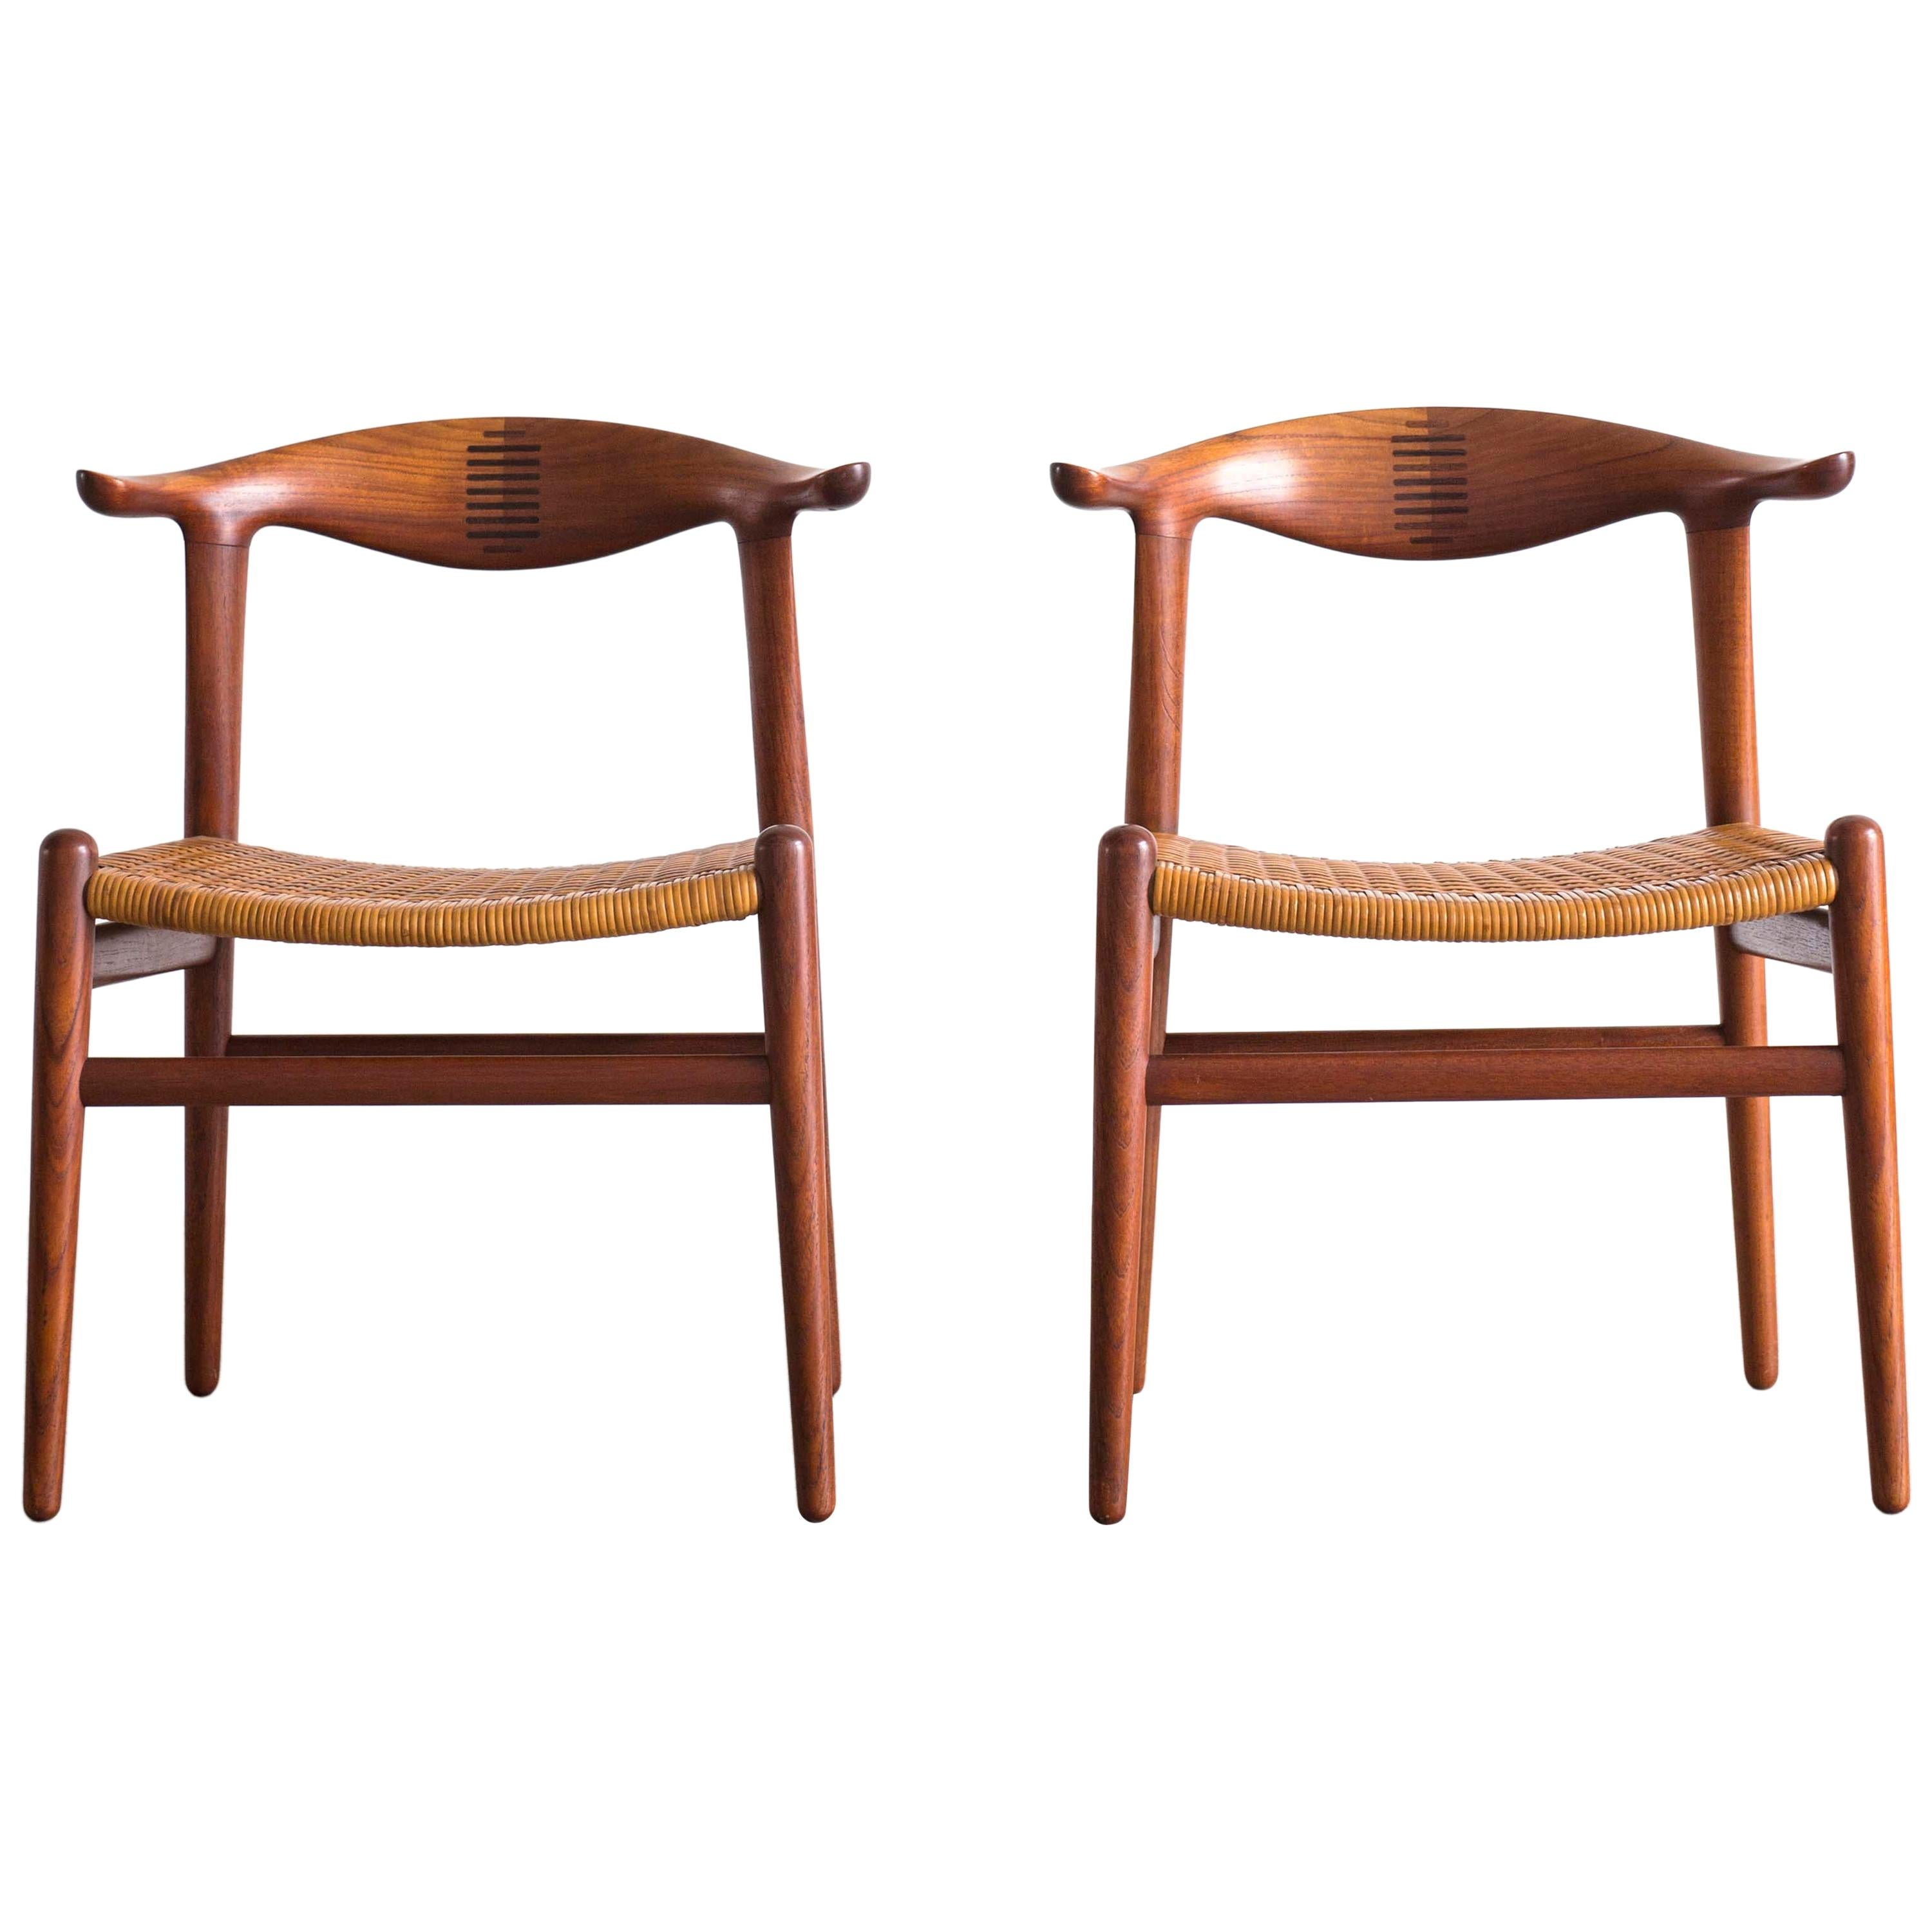 Hans J. Wegner Cow Horn Chairs for Johannes Hansen